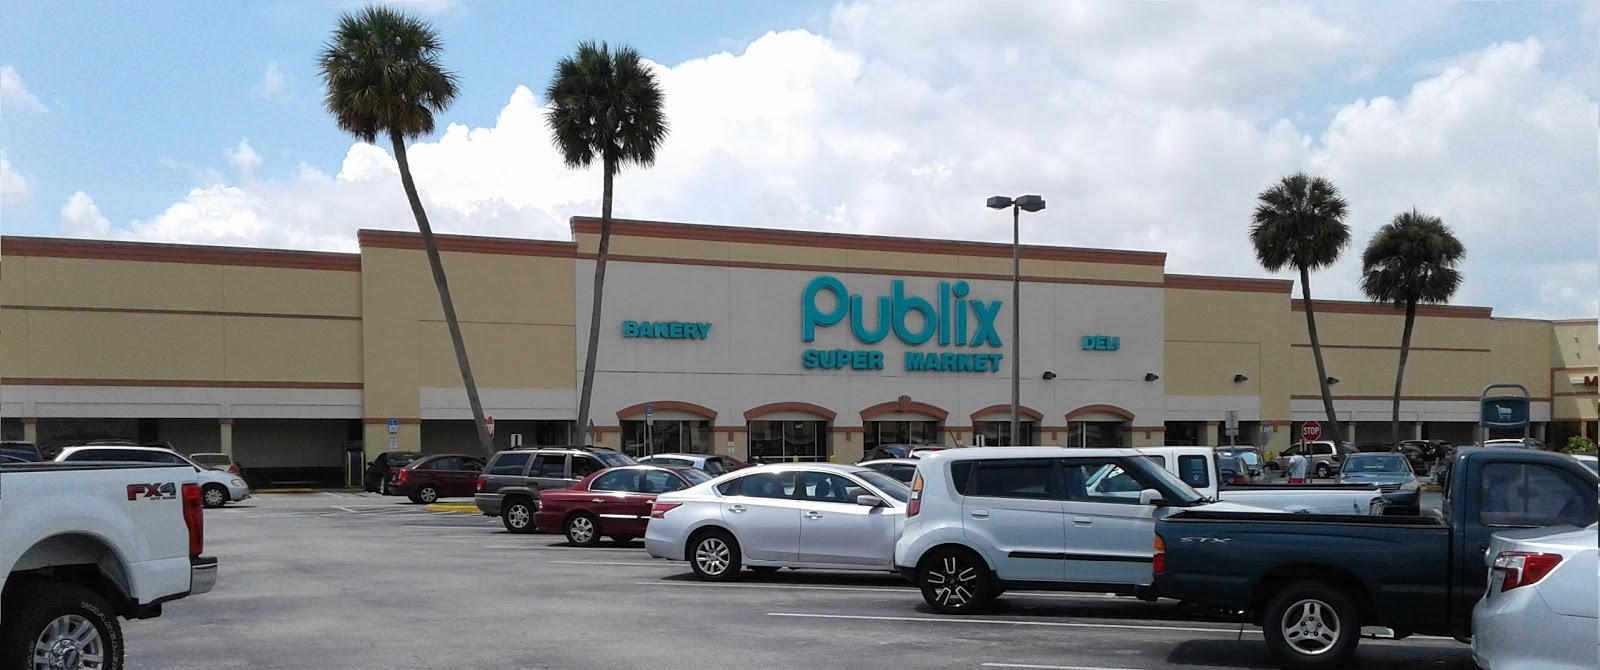 The Last Major Remodel At This Publix Was In 1995 (other Than The Usual  Decor Swaps). I Believe 1995 Was The Year The Current Exterior Was Built,  ...